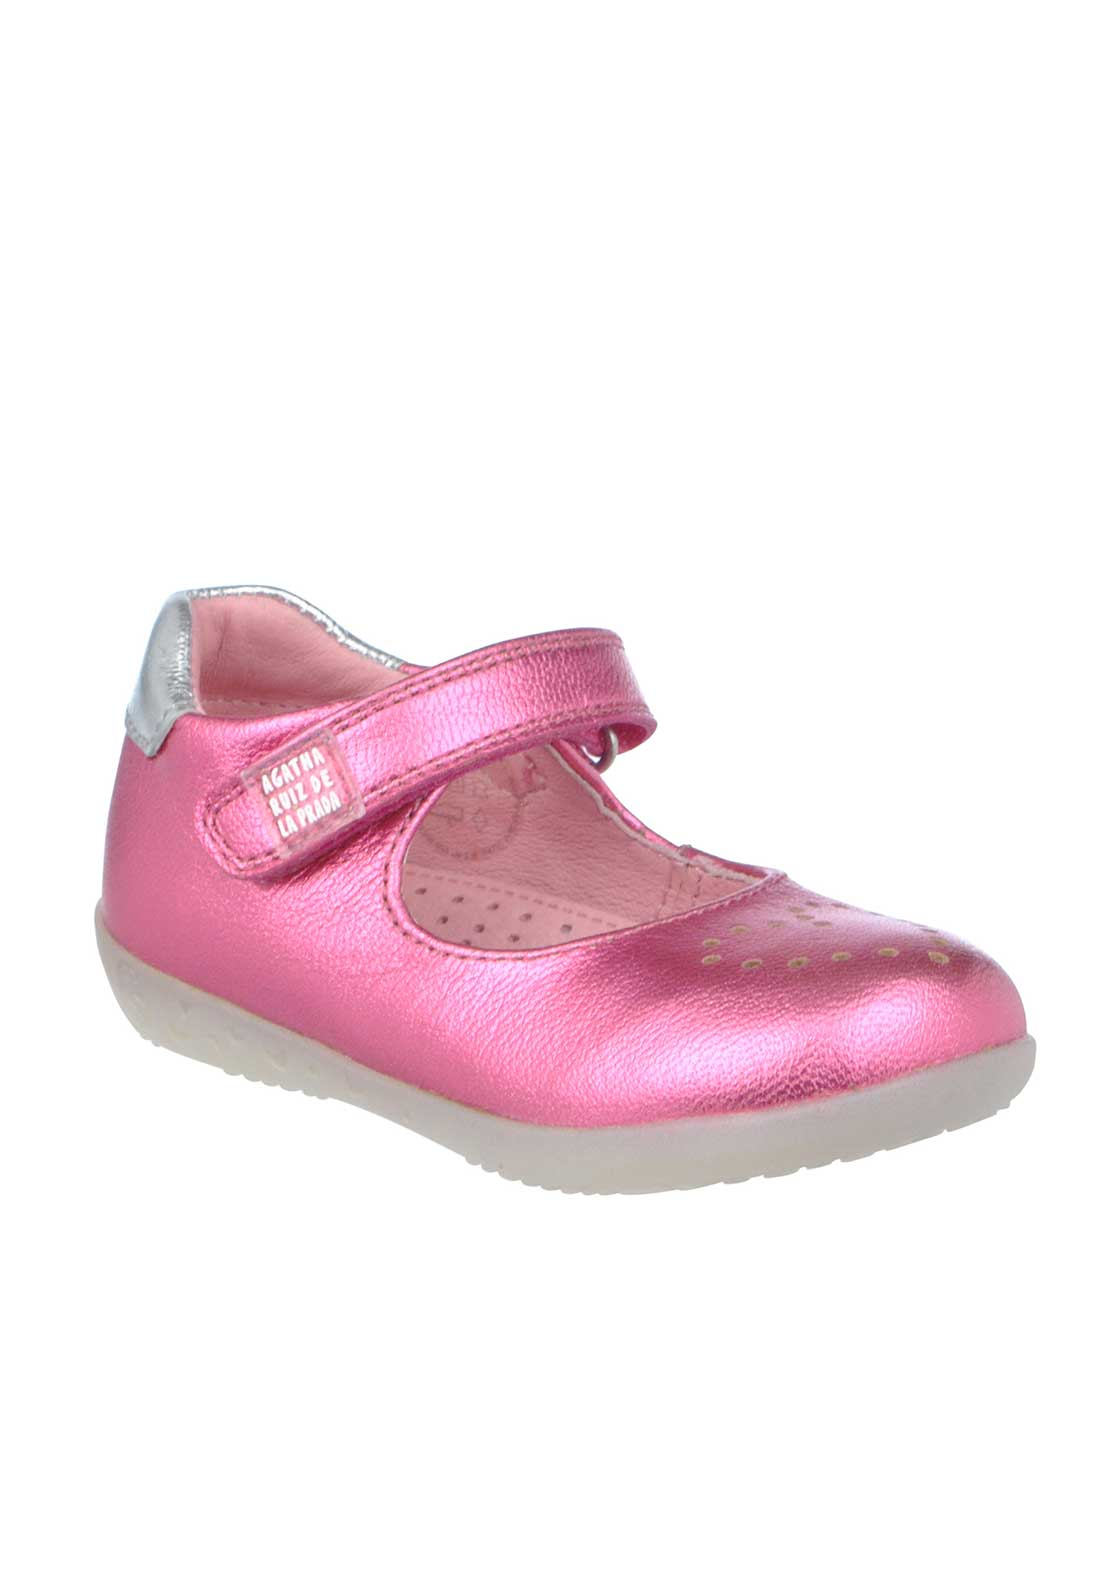 Agatha Ruiz De La Prada Baby Girls Leather Metallic Velcro Strap Shoes, Pink